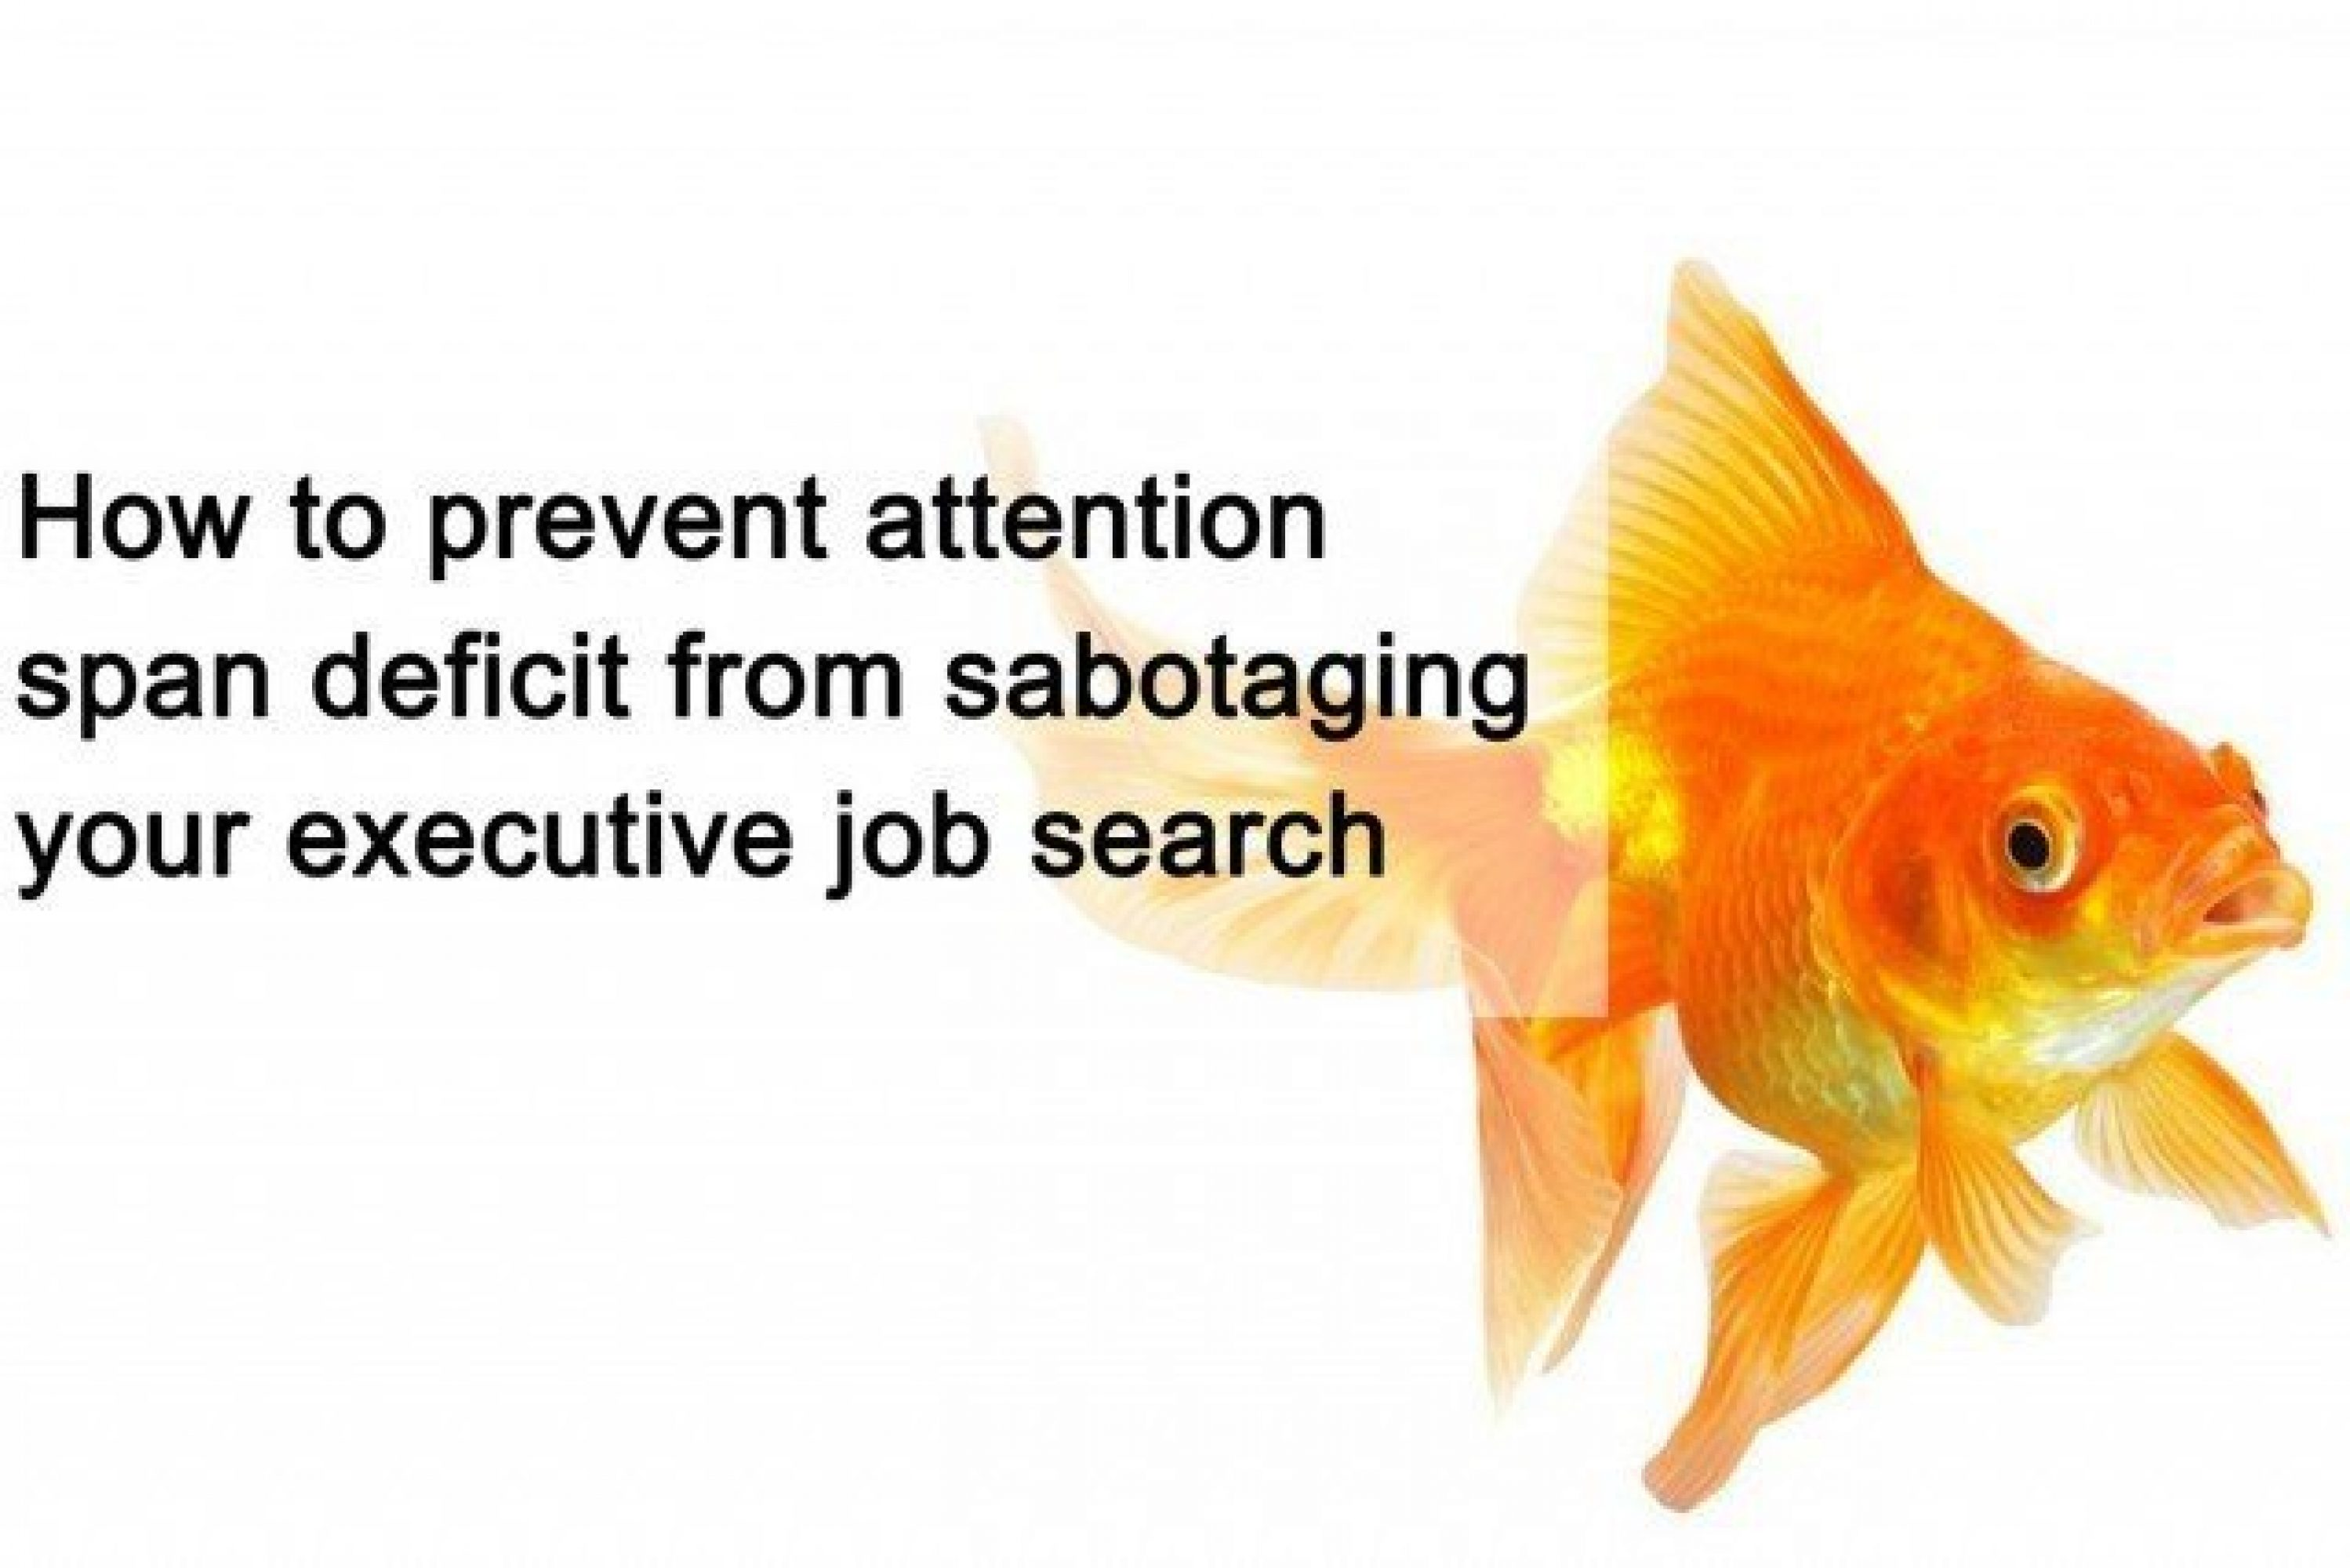 How to prevent attention span deficit from sabotaging your executive job search